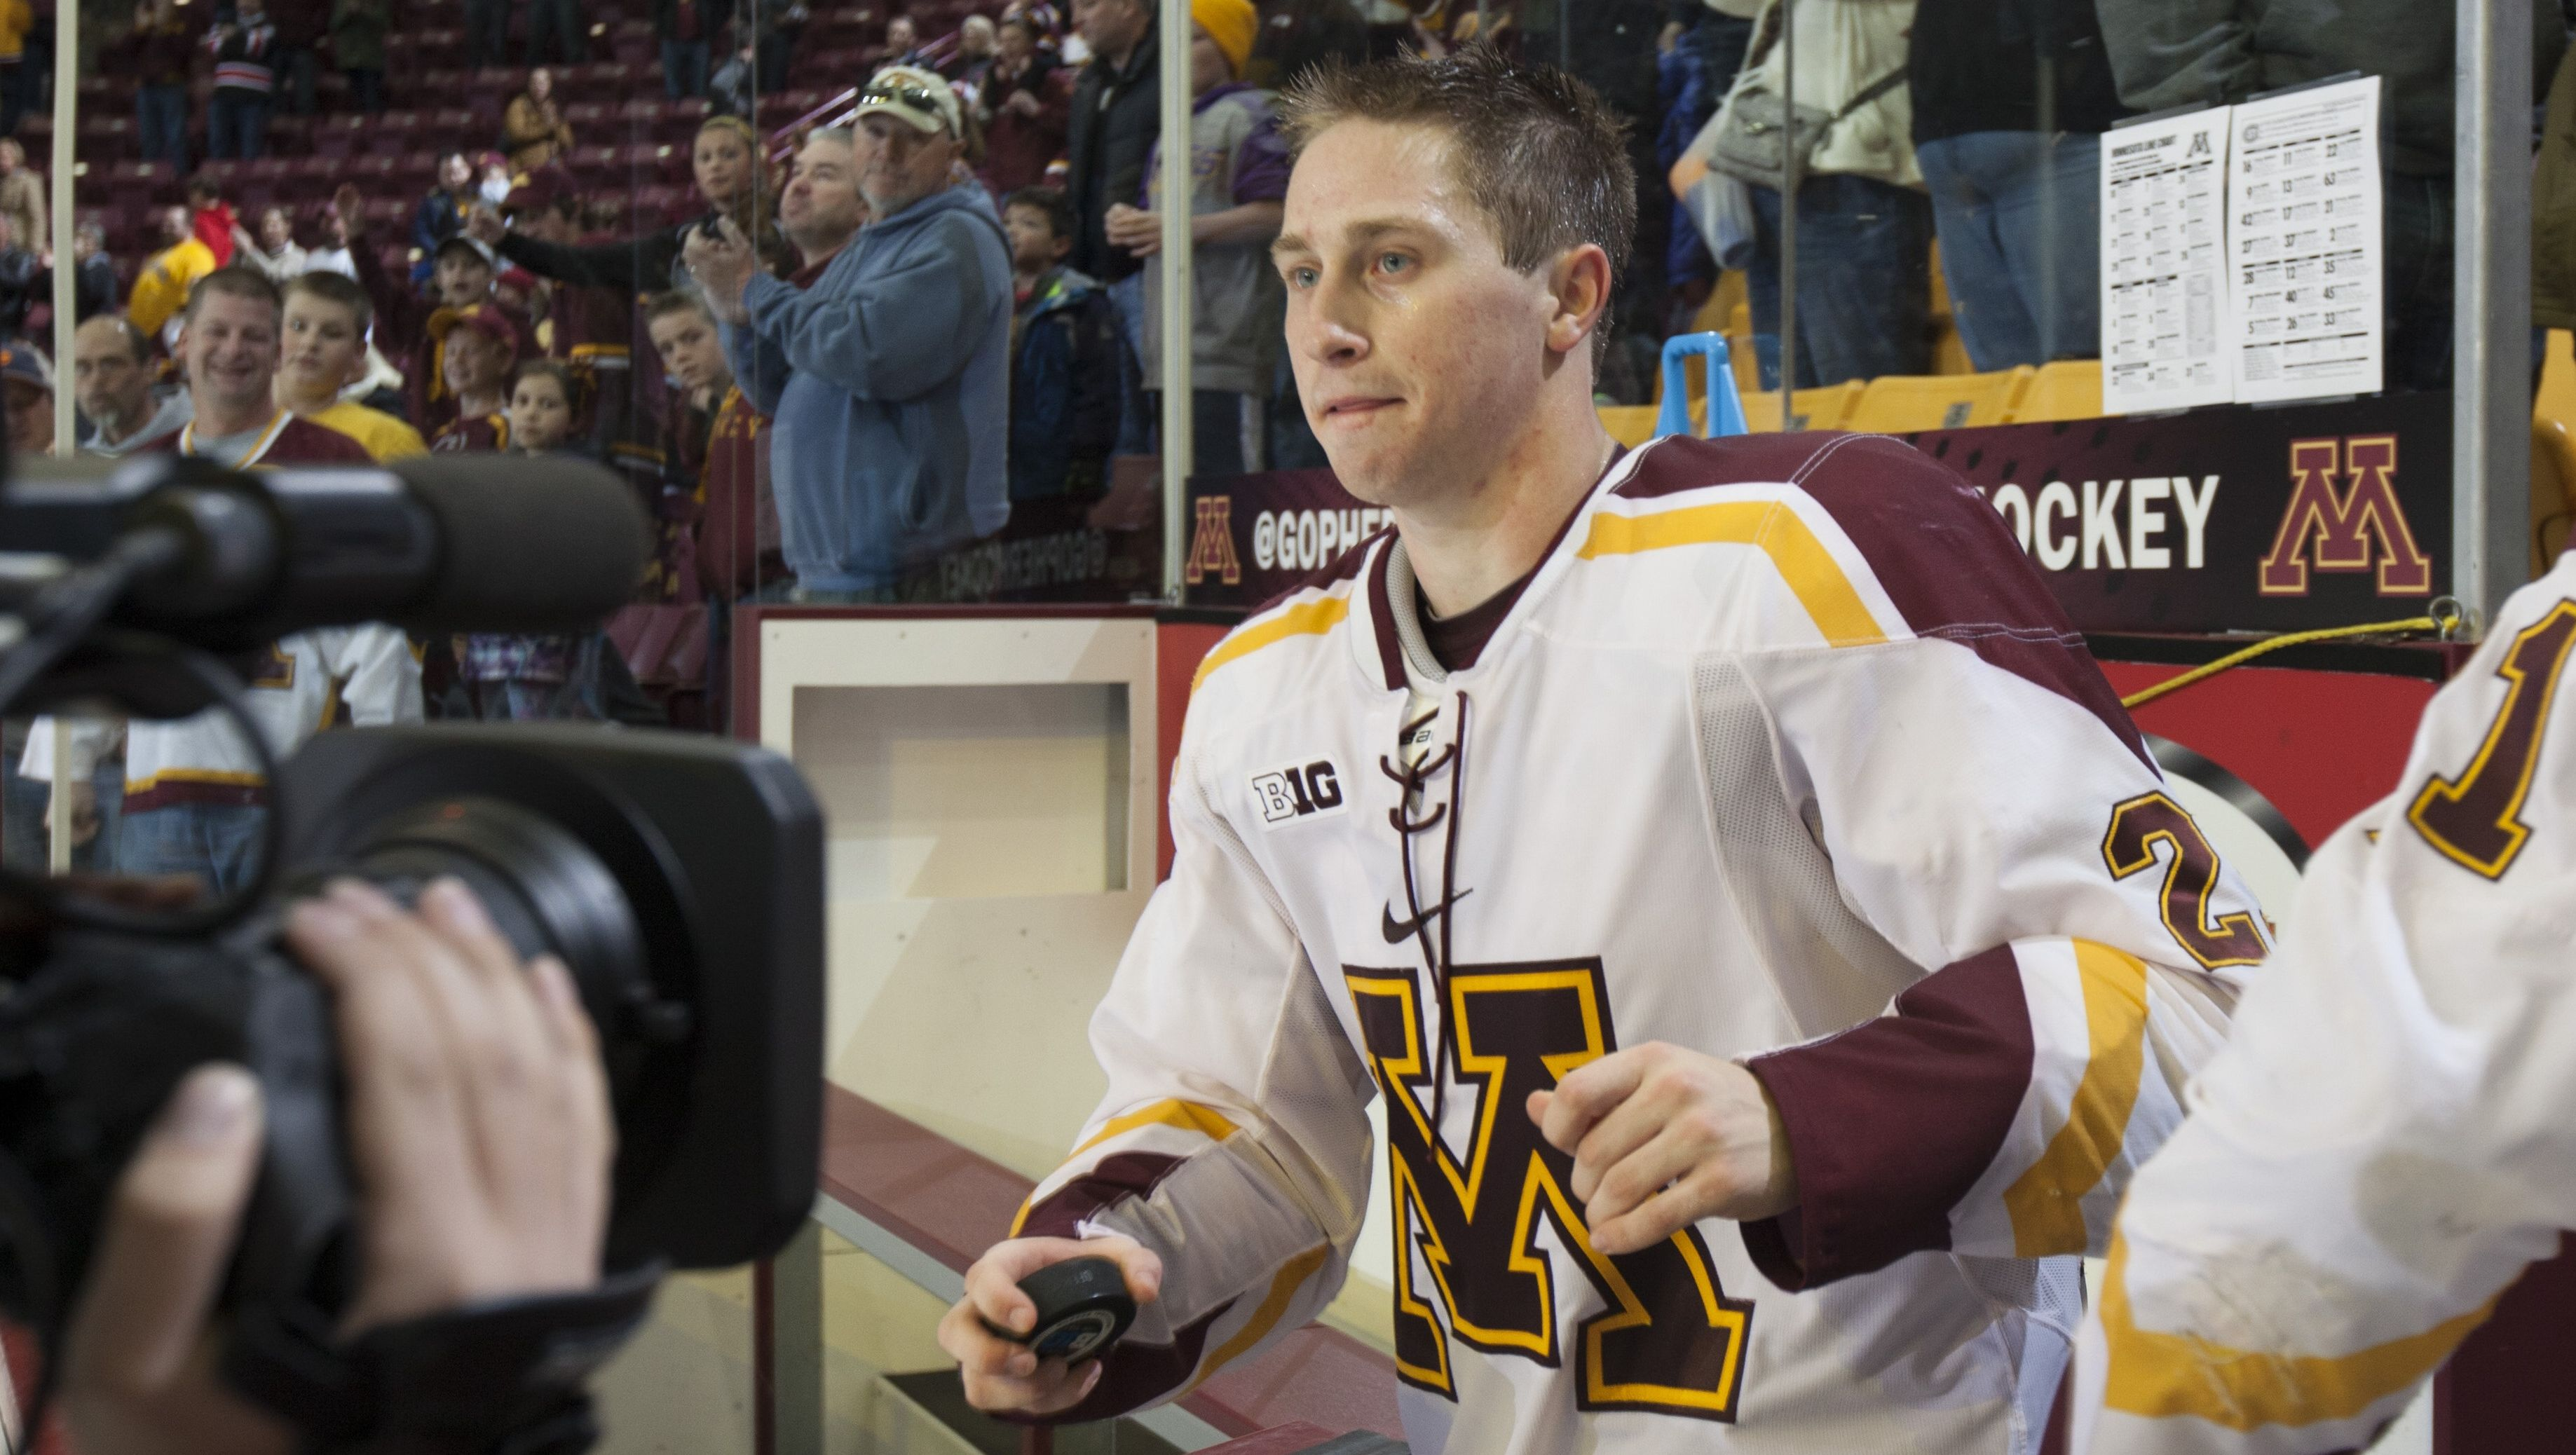 The Gophers hockey program and head coach Don Lucia have named Justin Kloos team captain for the 2015-16 season.